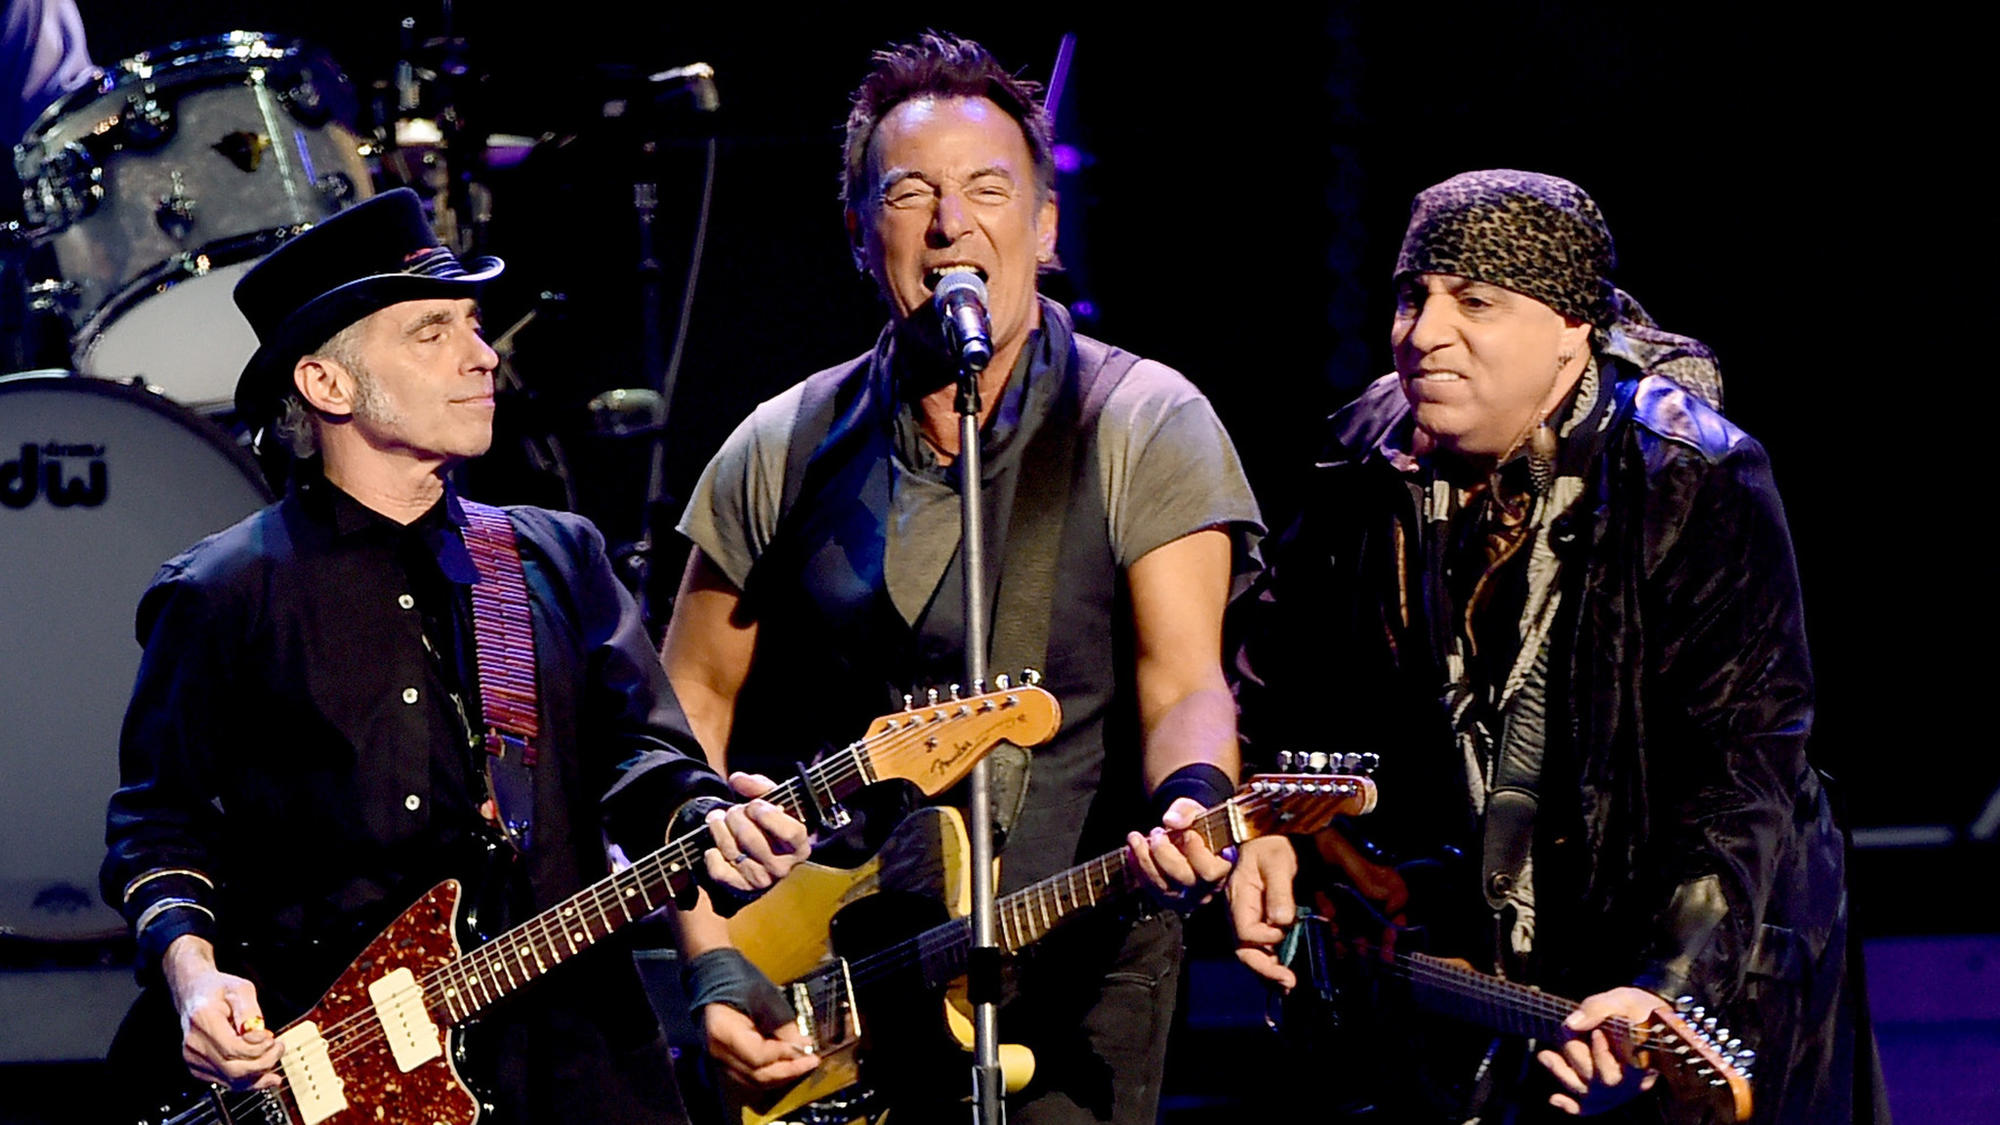 Nils Lofgren, left, Bruce Springsteen and Steven Van Zandt at the L.A. Sports Arena on March 15.